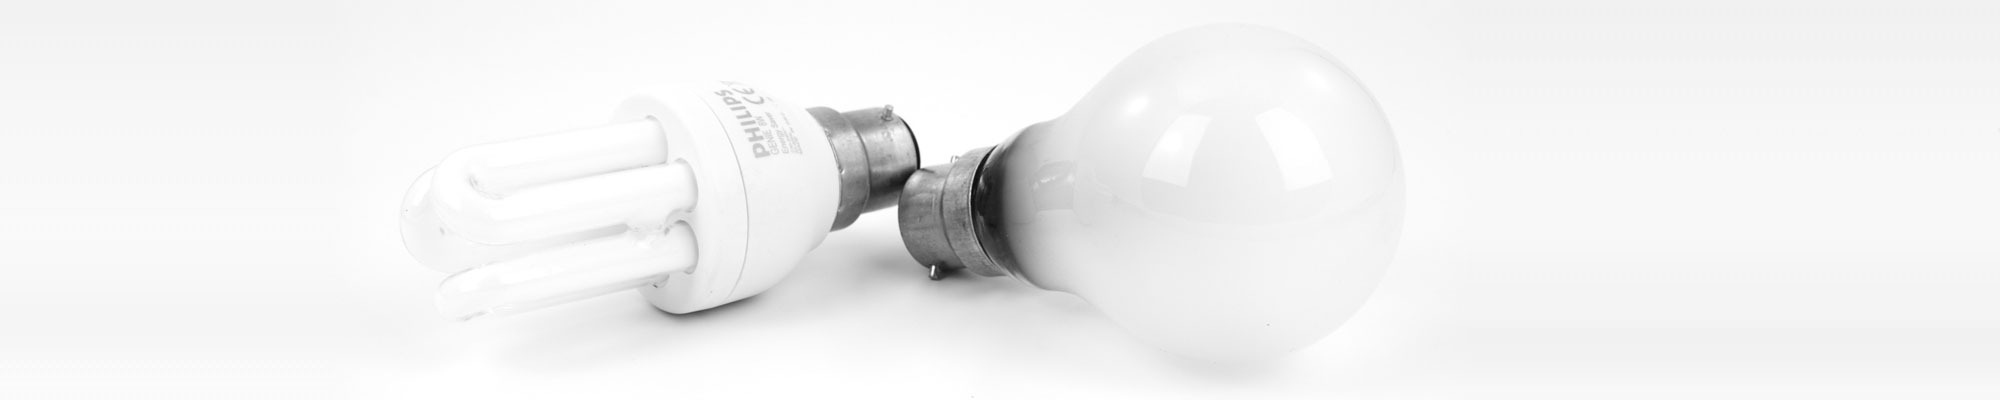 Commercial and Industrial Energy Savings